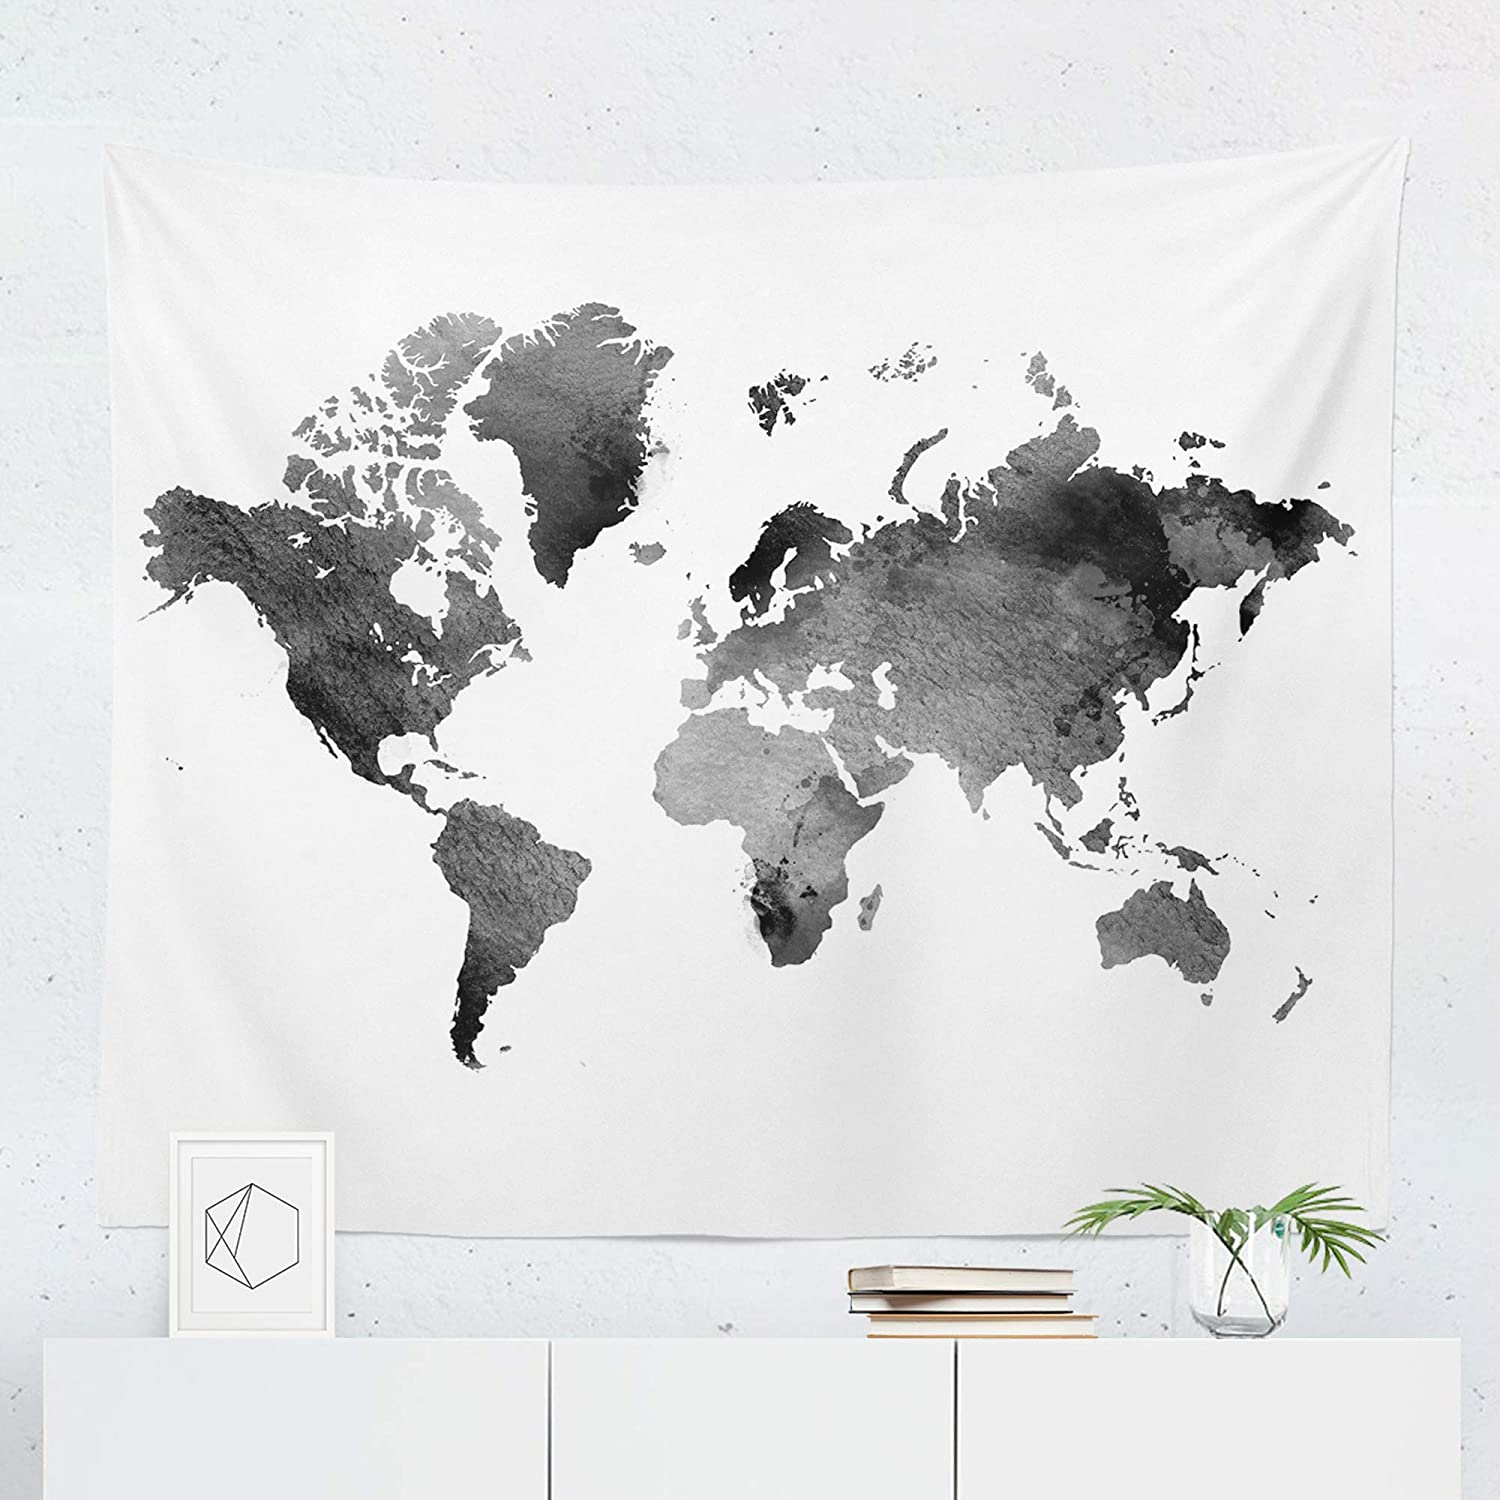 small world map tapestry Amazon Com Watercolor Black World Map Tapestry Wall Hanging Maps